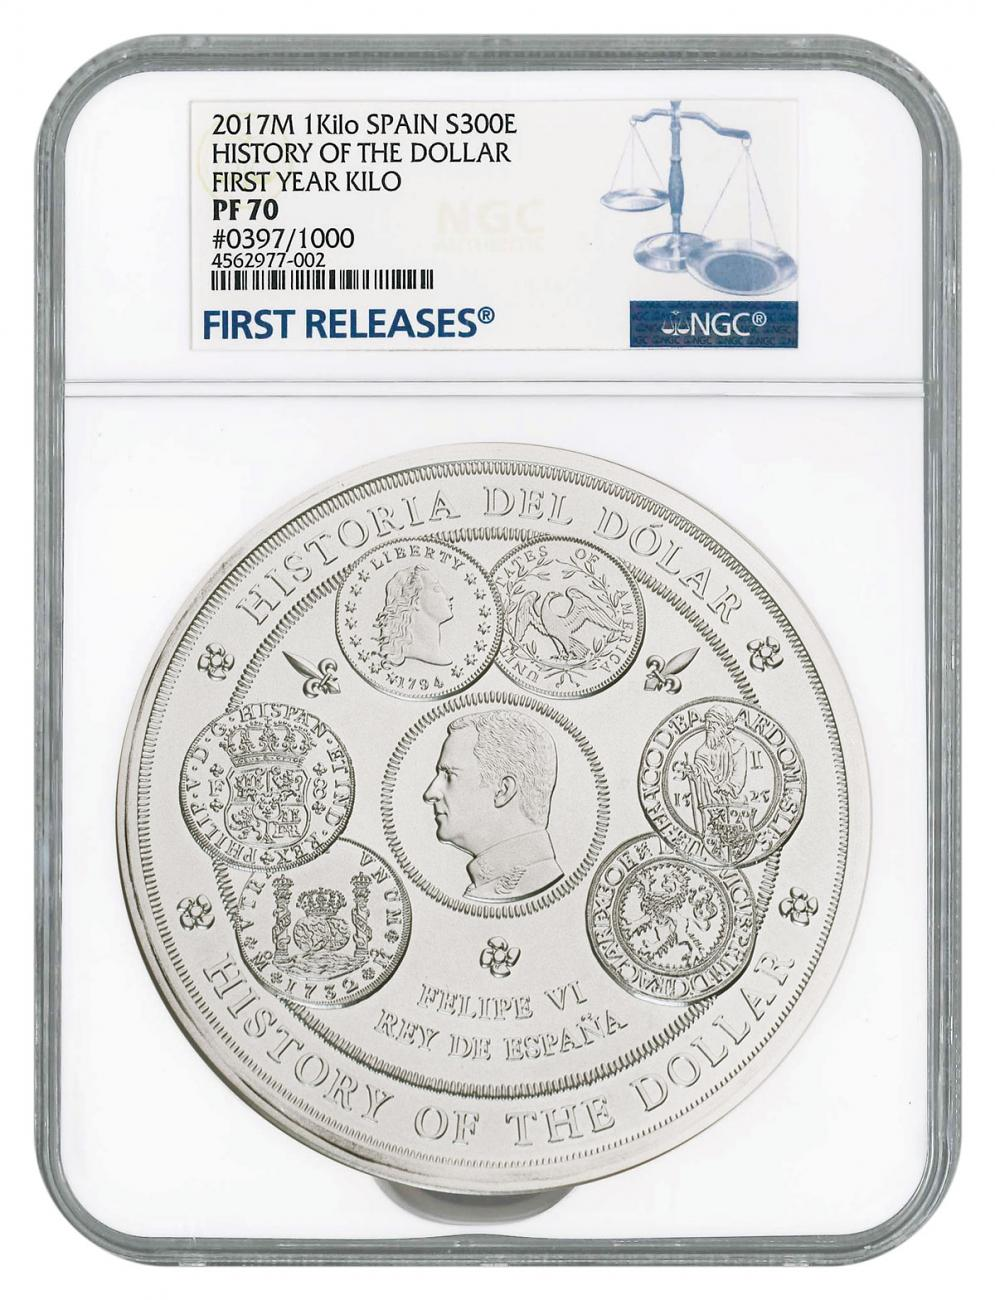 2017 Spain History of the Dollar 1 Kilo Silver Proof €300 Coin Scarce and Unique Coin Division NGC PF70 UC FR